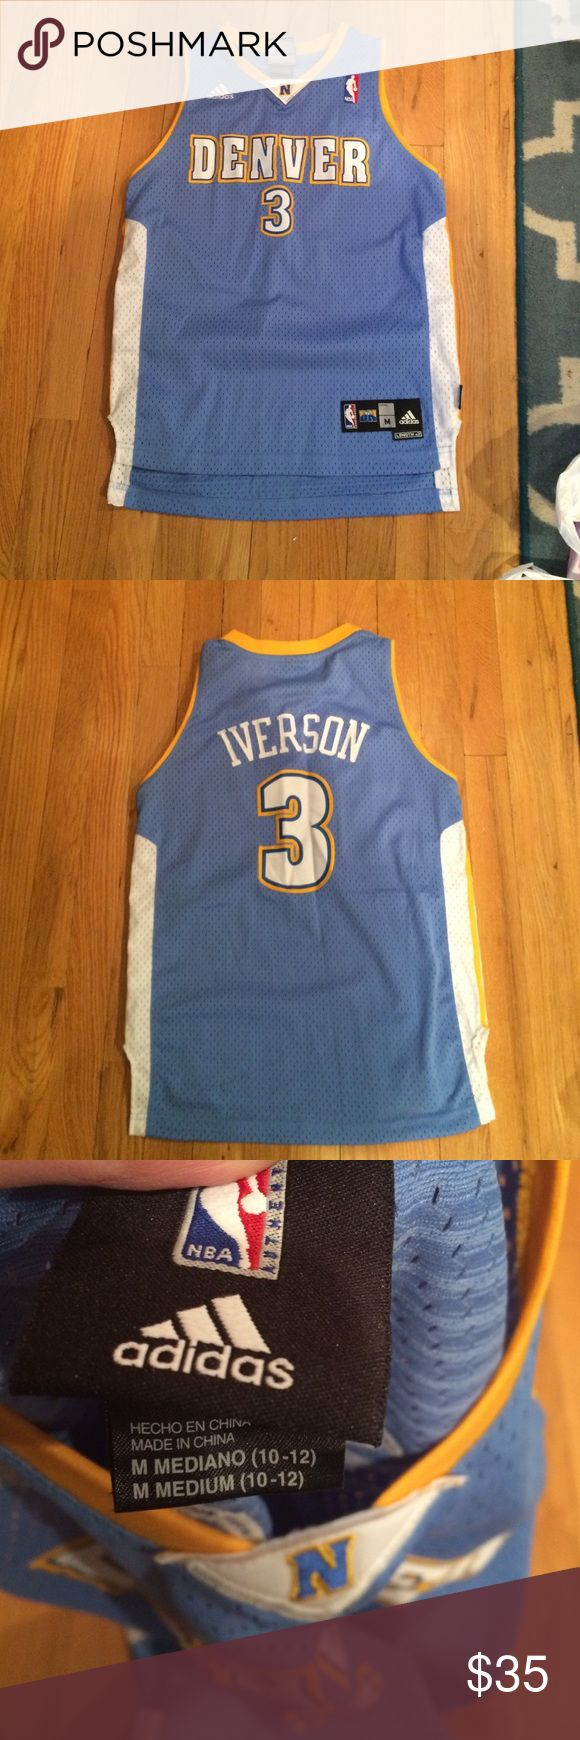 Authentic Allen Iverson Jersey Youth M Jersey was worn once. In excellent condition. Fits a woman's small. Youth 10-12 Adidas Other